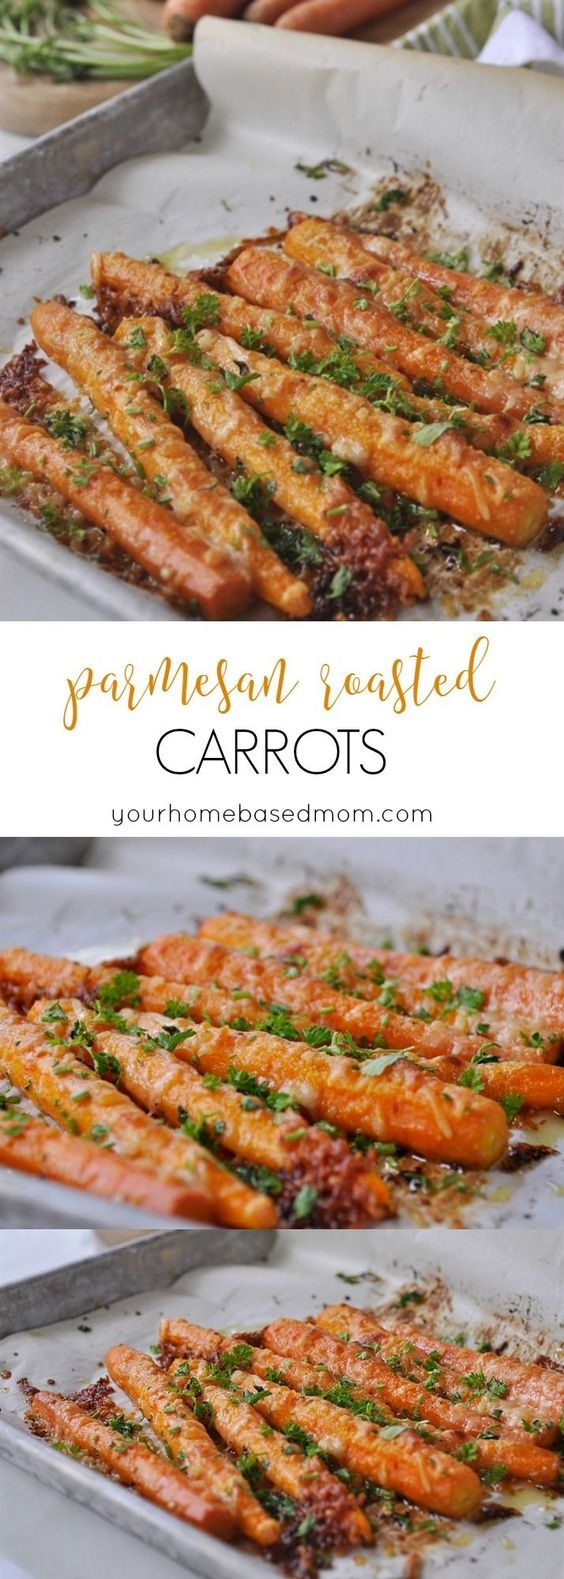 Parmesan Roasted Carrots